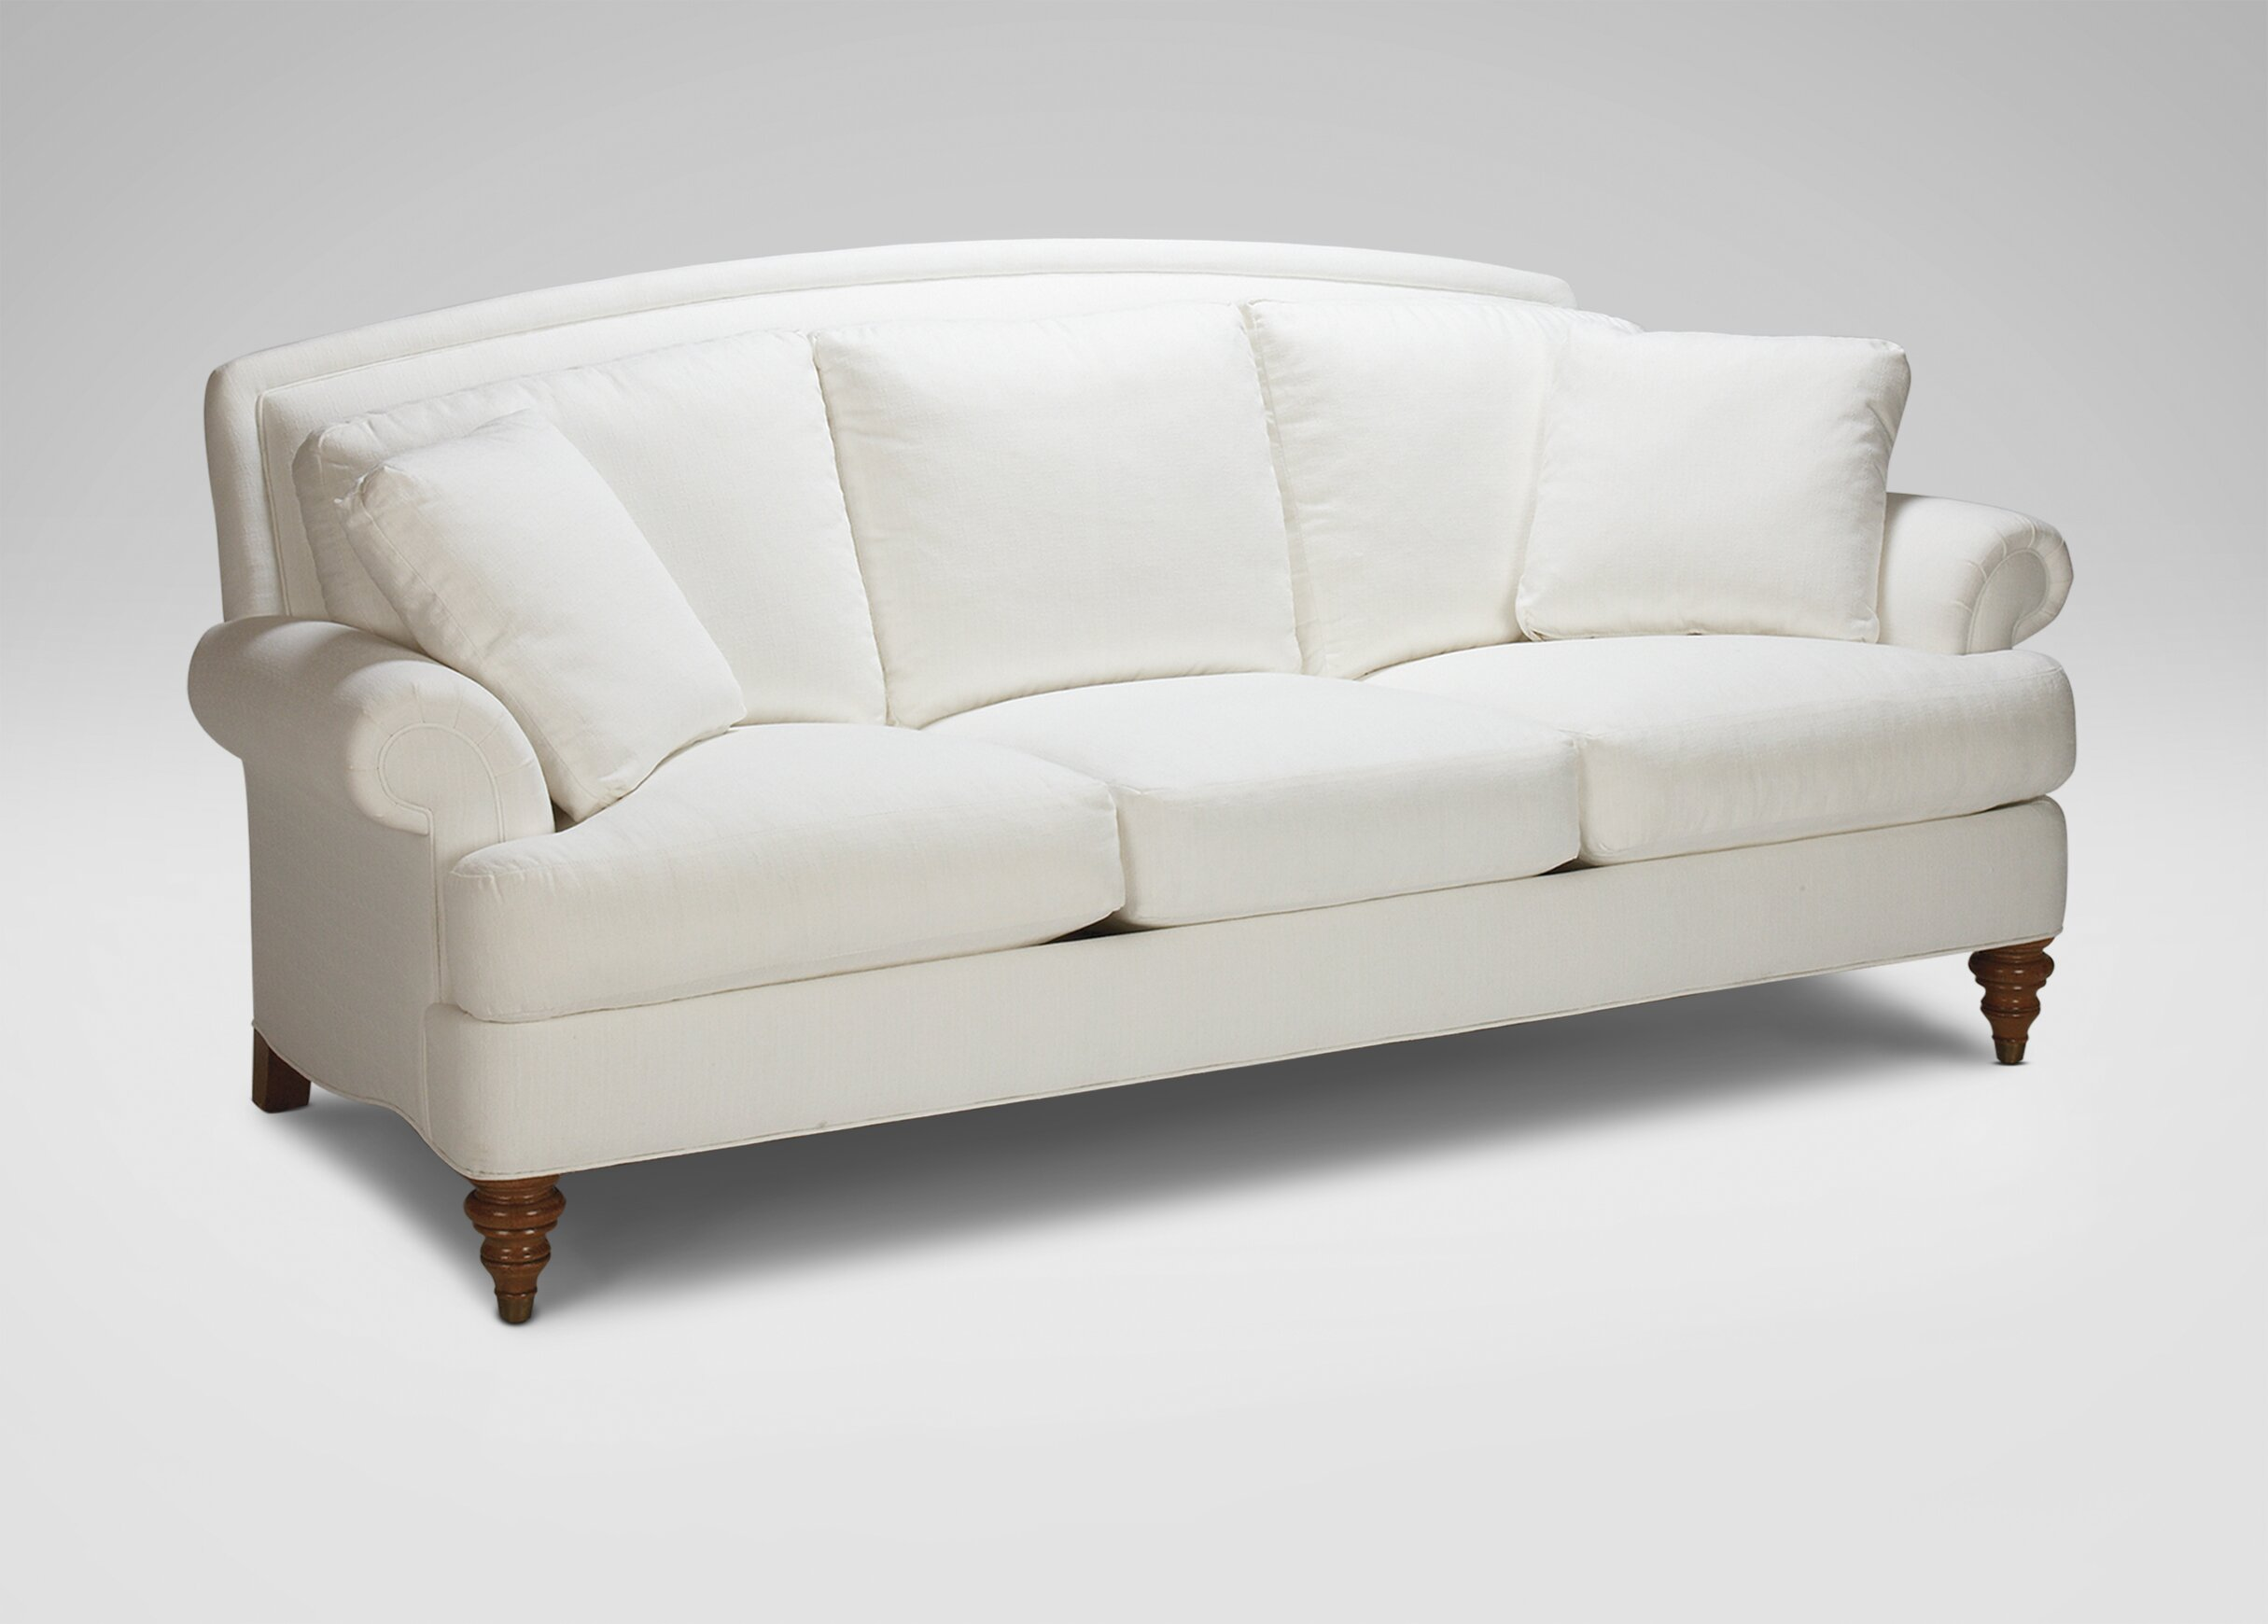 Ethan Allen Leather Couch | Ethan Allen Retreat Sofa Reviews | Quality Of Ethan  Allen Furniture